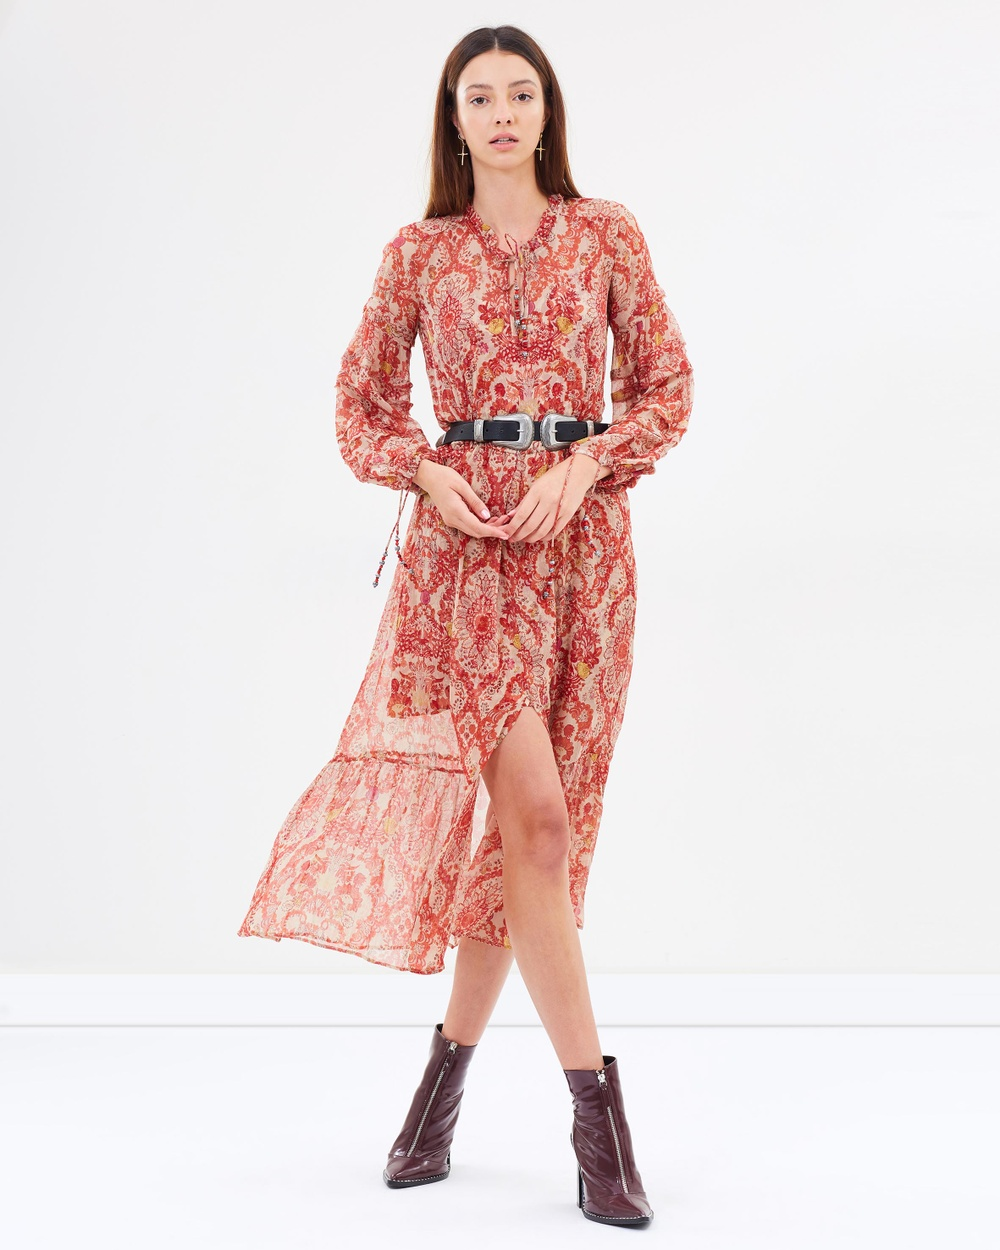 The Kooples Chilli Pepper Print Long Dress with Chilli Pepper Print